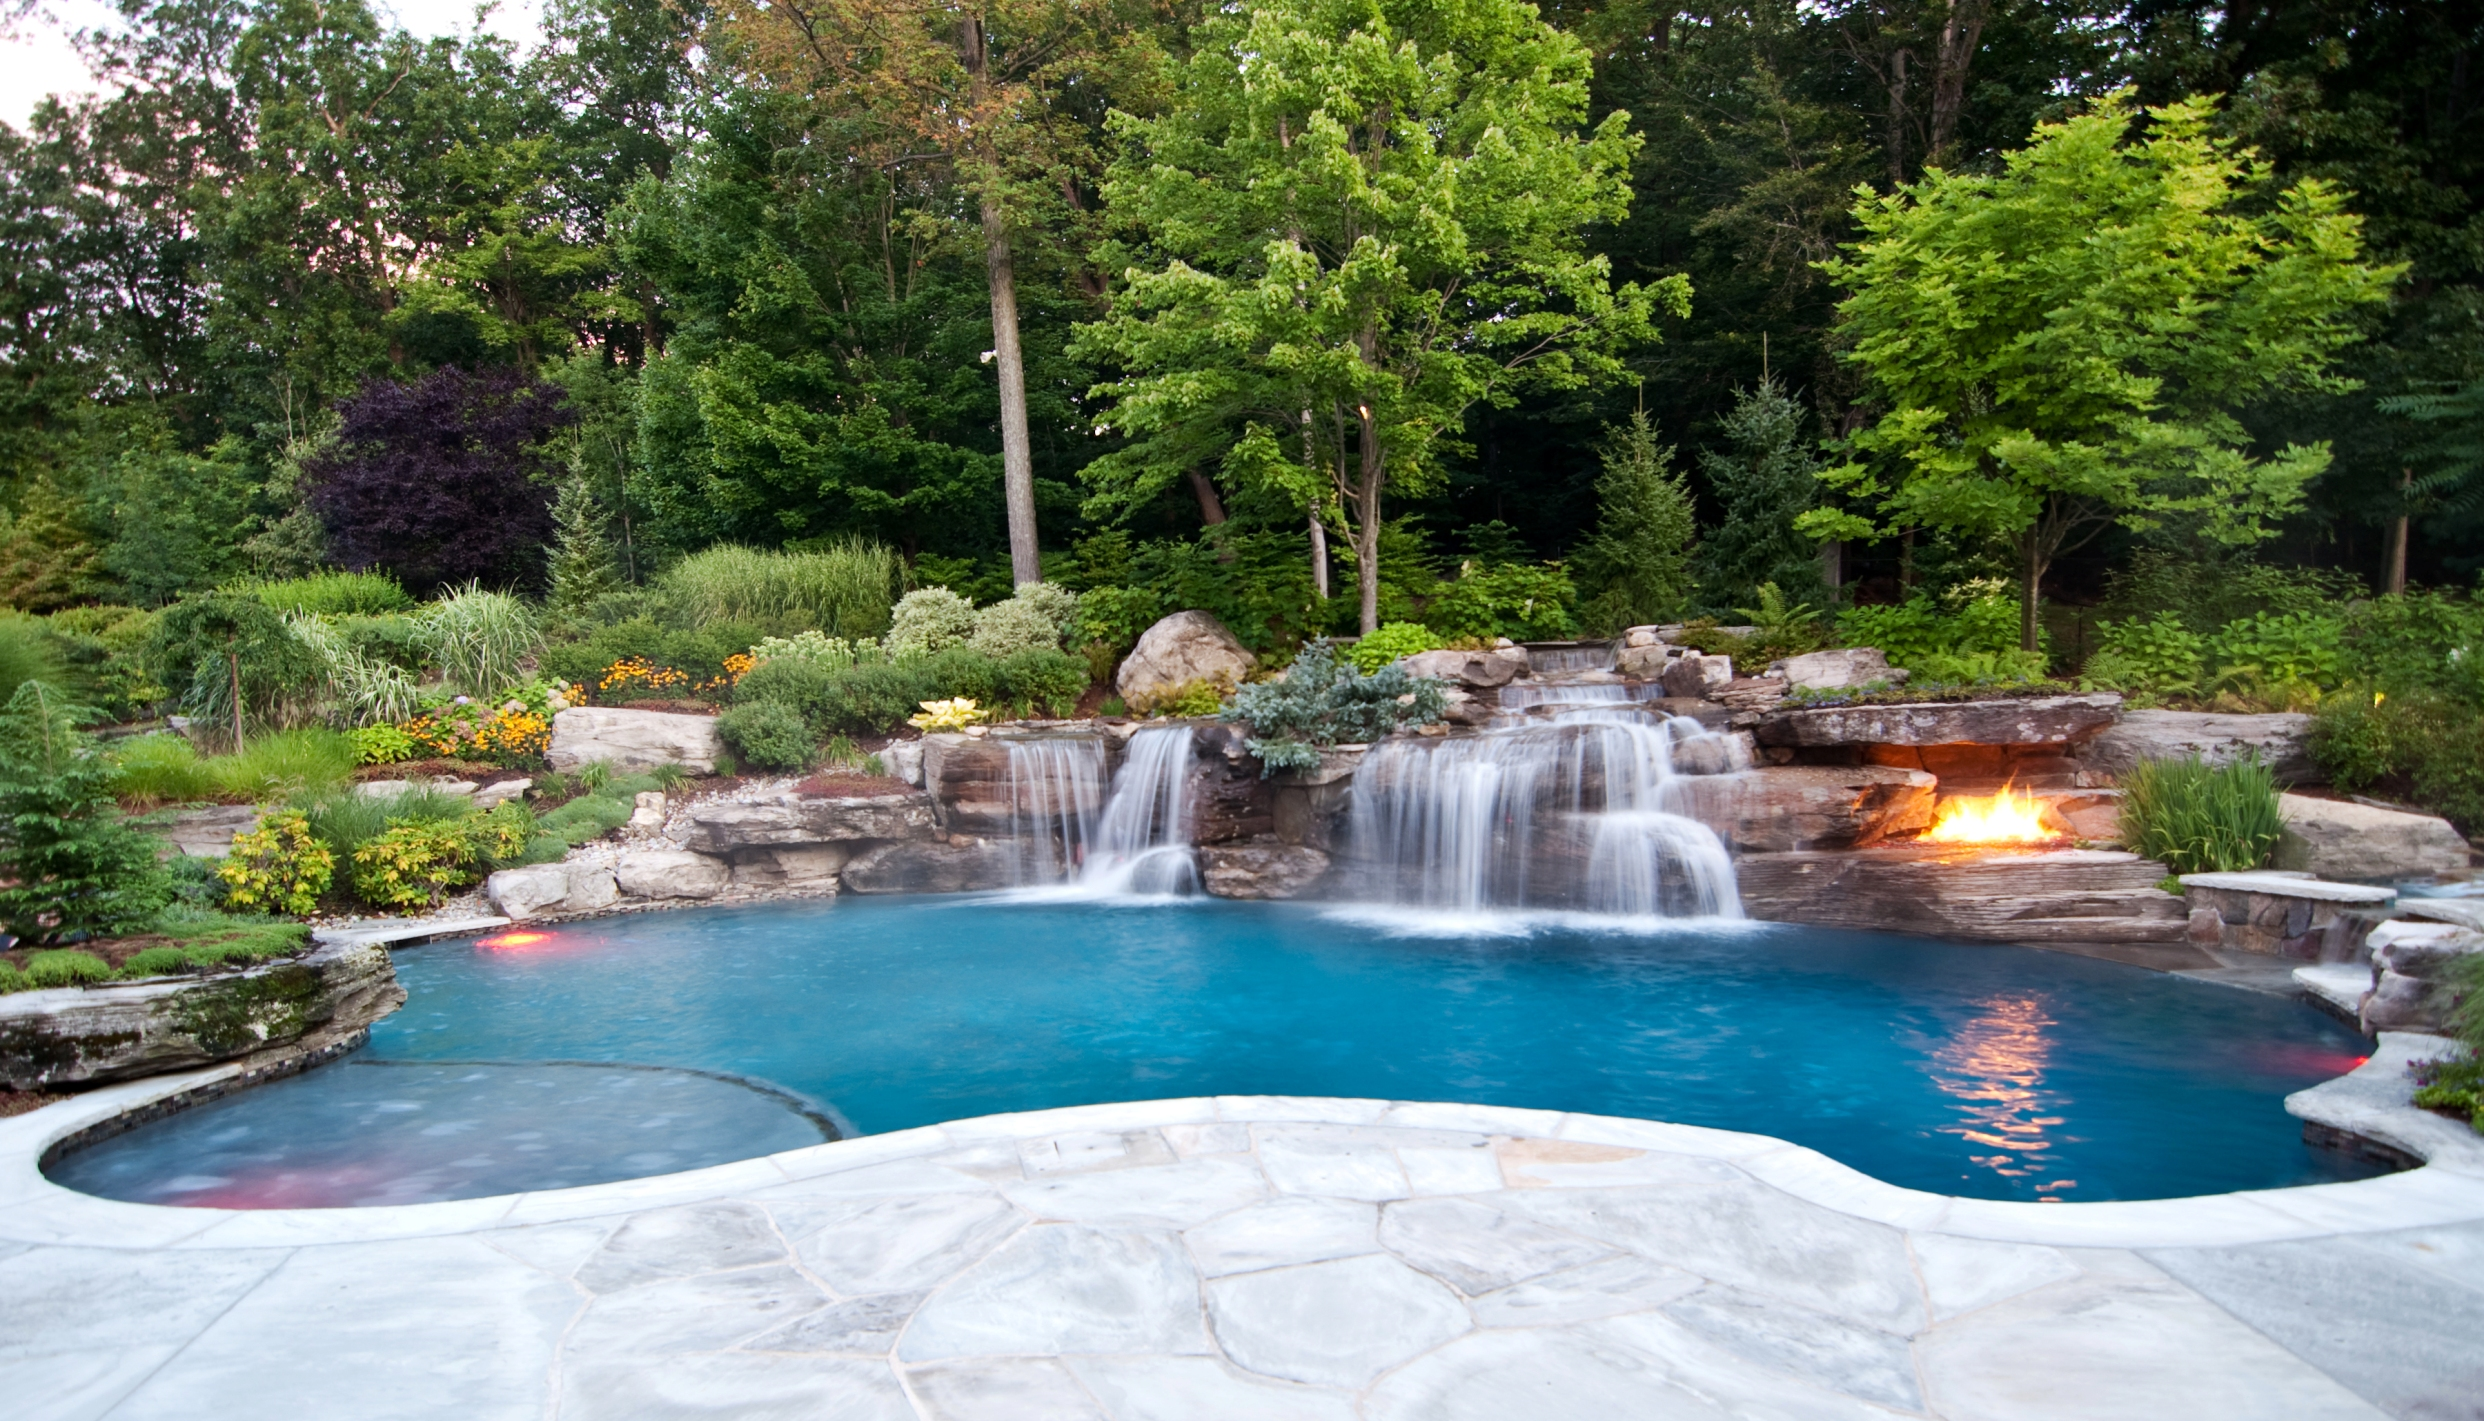 New pool construction northern virginia maryland and for Poolside ideas